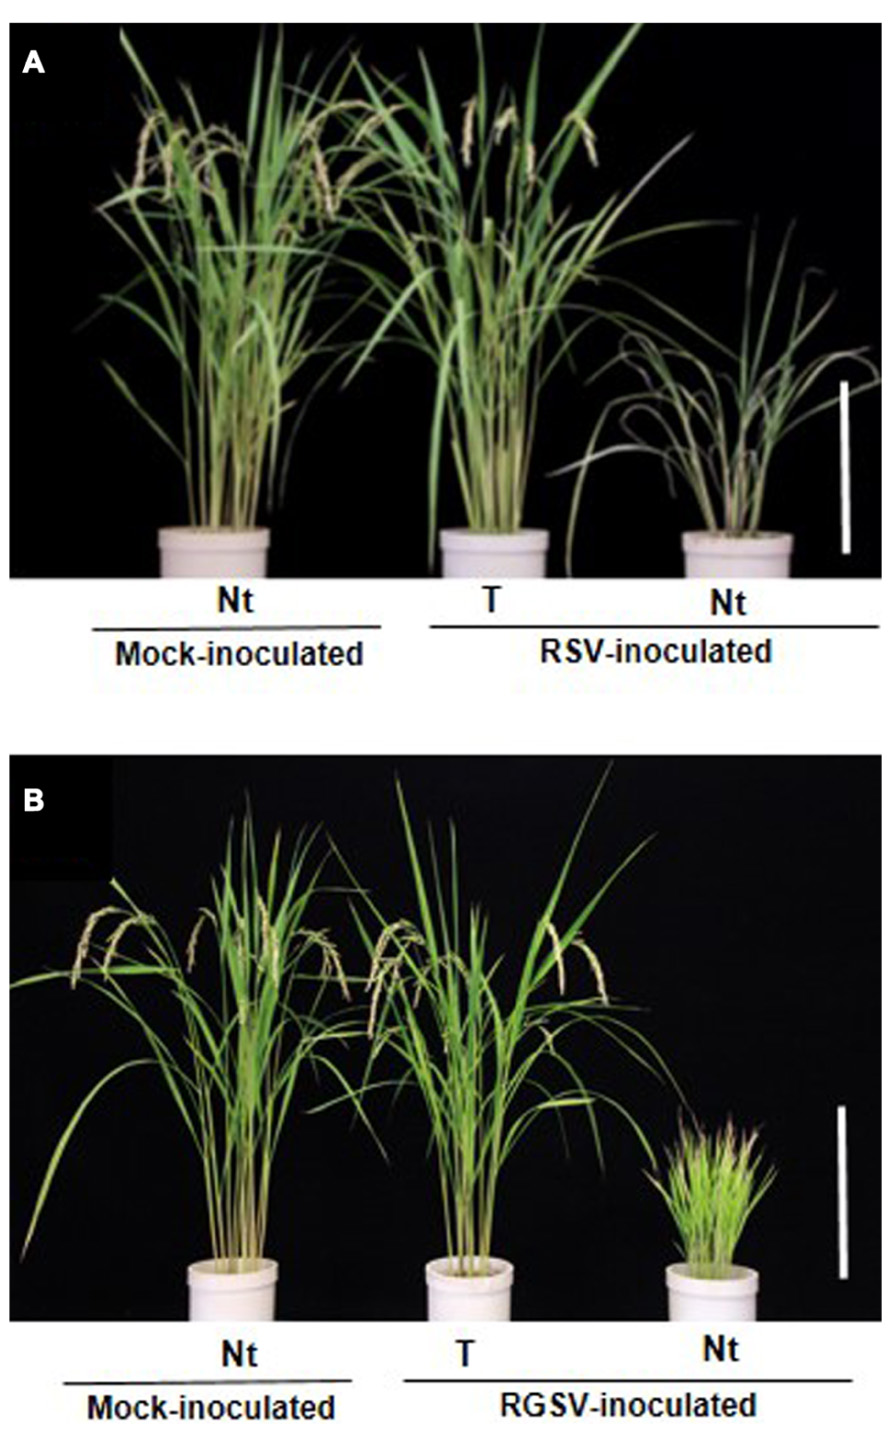 transgenic plants for enhanced biodegradation and Hence, the idea to enhance plant biodegradation by genetic transformation was developed, following a strategy similar to that used to develop transgenic crops 1 eapen, s.